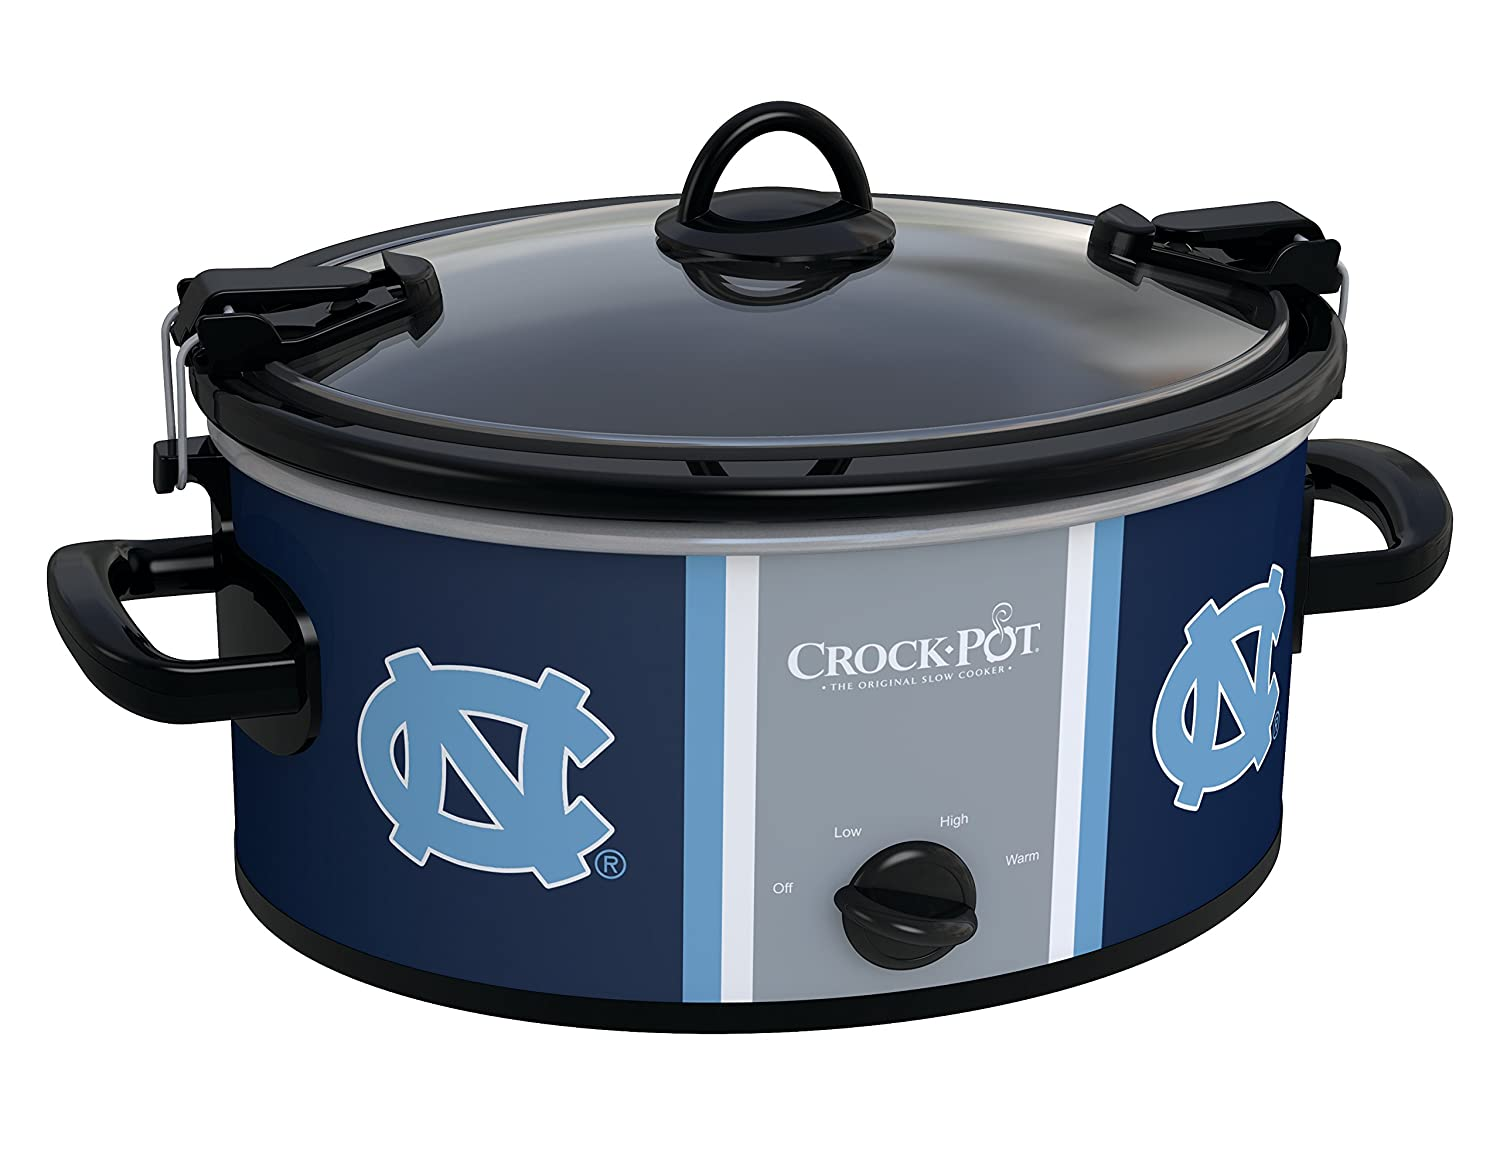 Crock-pot SCCPNCAA600-UNC University of North Carolina Slow Cookers, White